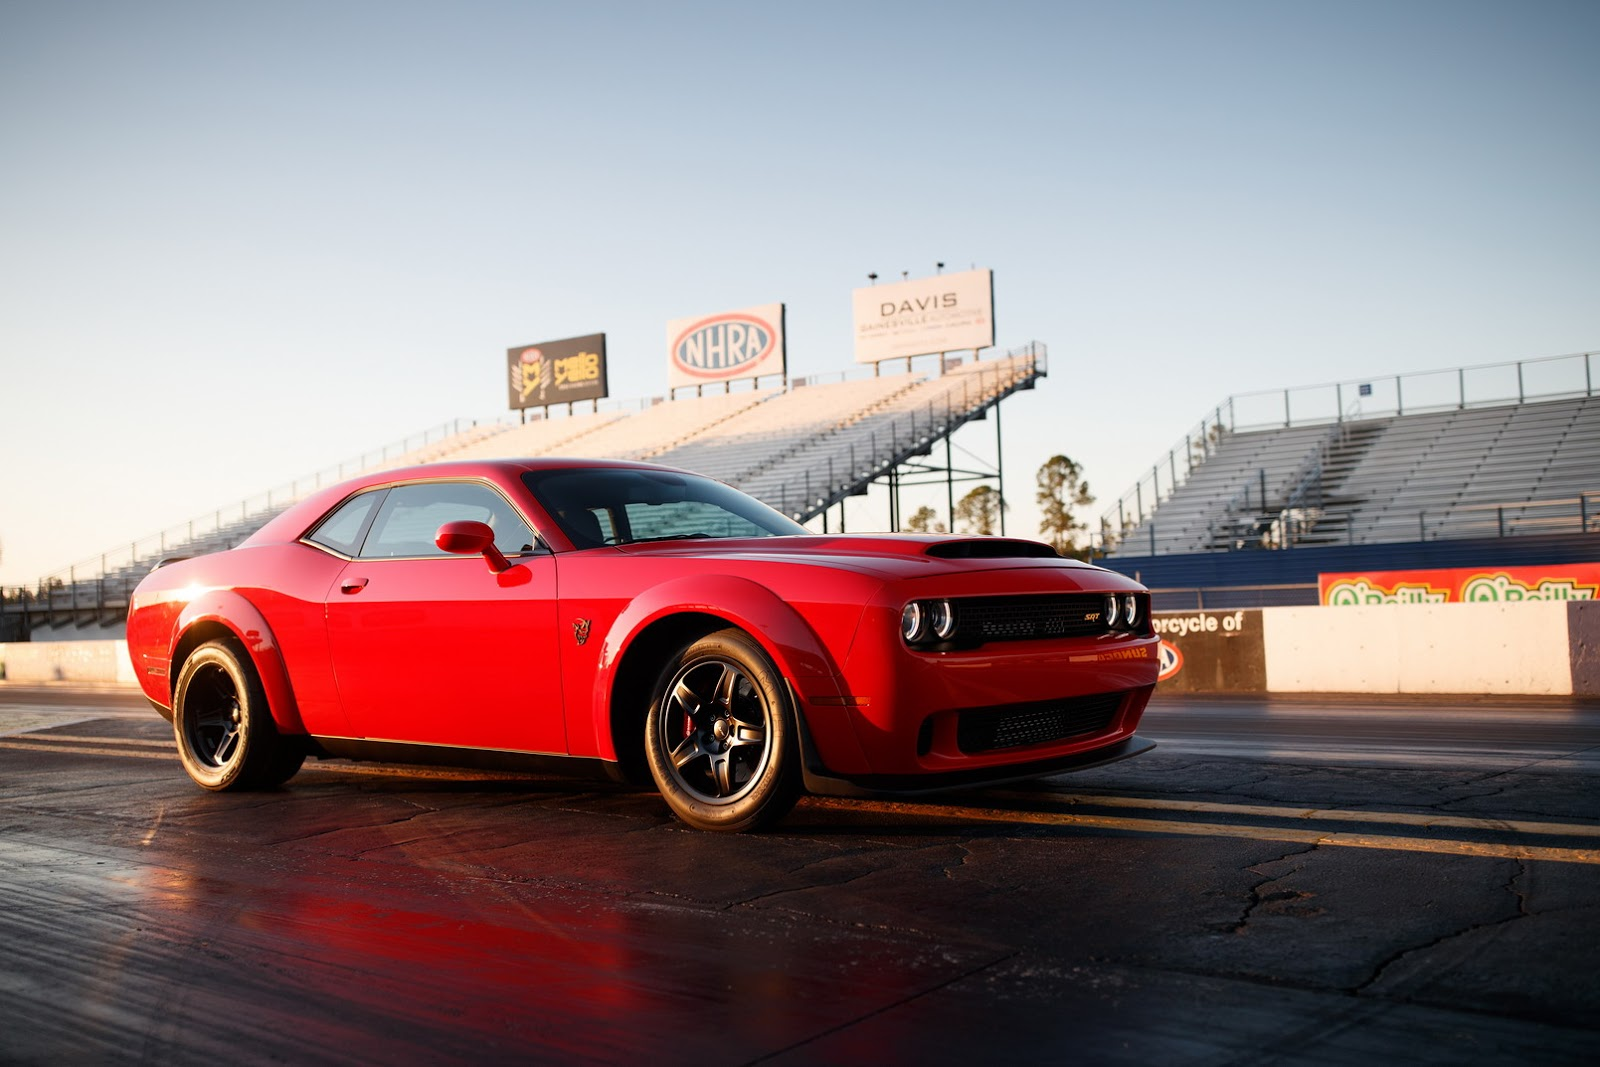 Hennessey-Possesed Dodge Challenger Demon Getting 1,500 HP, NHRA-Legal Roll Cage - autoevolution